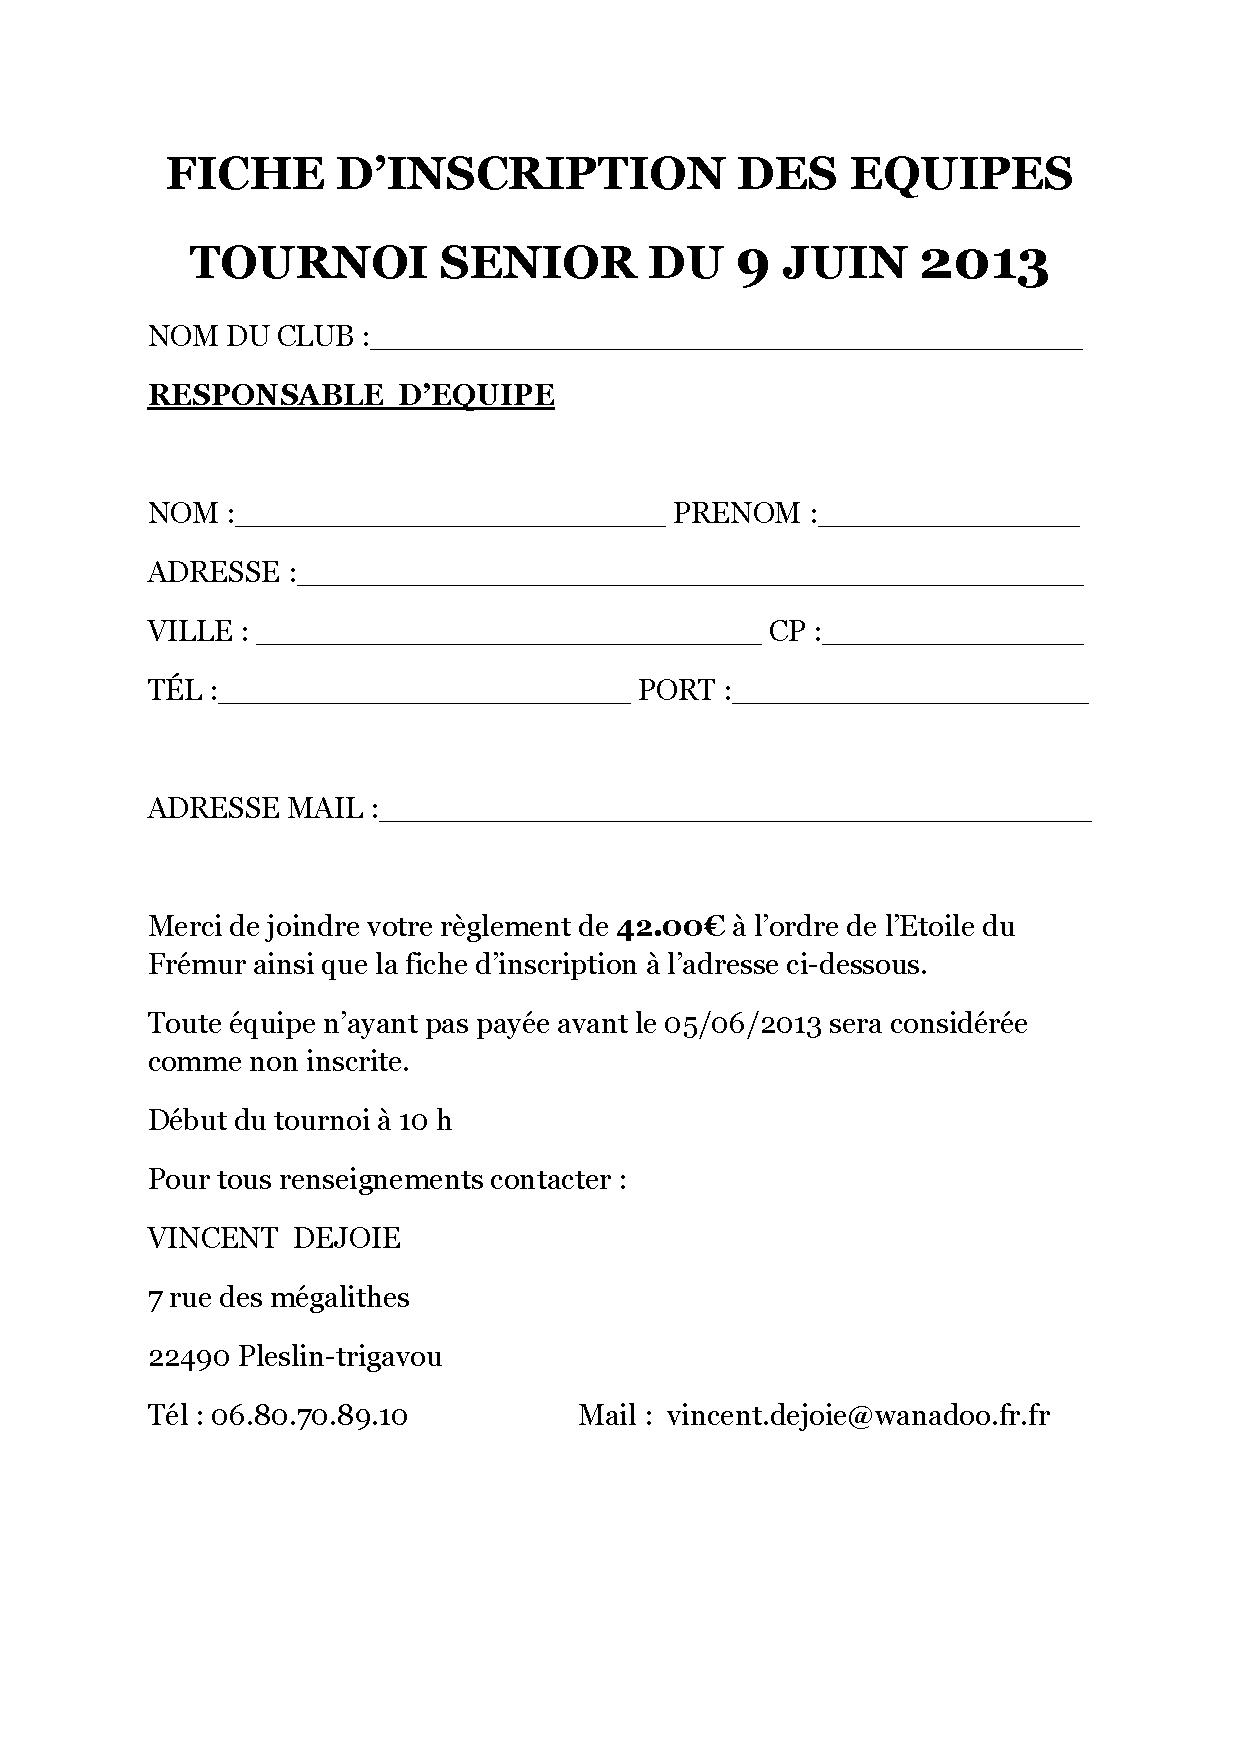 FICHE D'INSCRIPTION TOURNOIS SENIOR